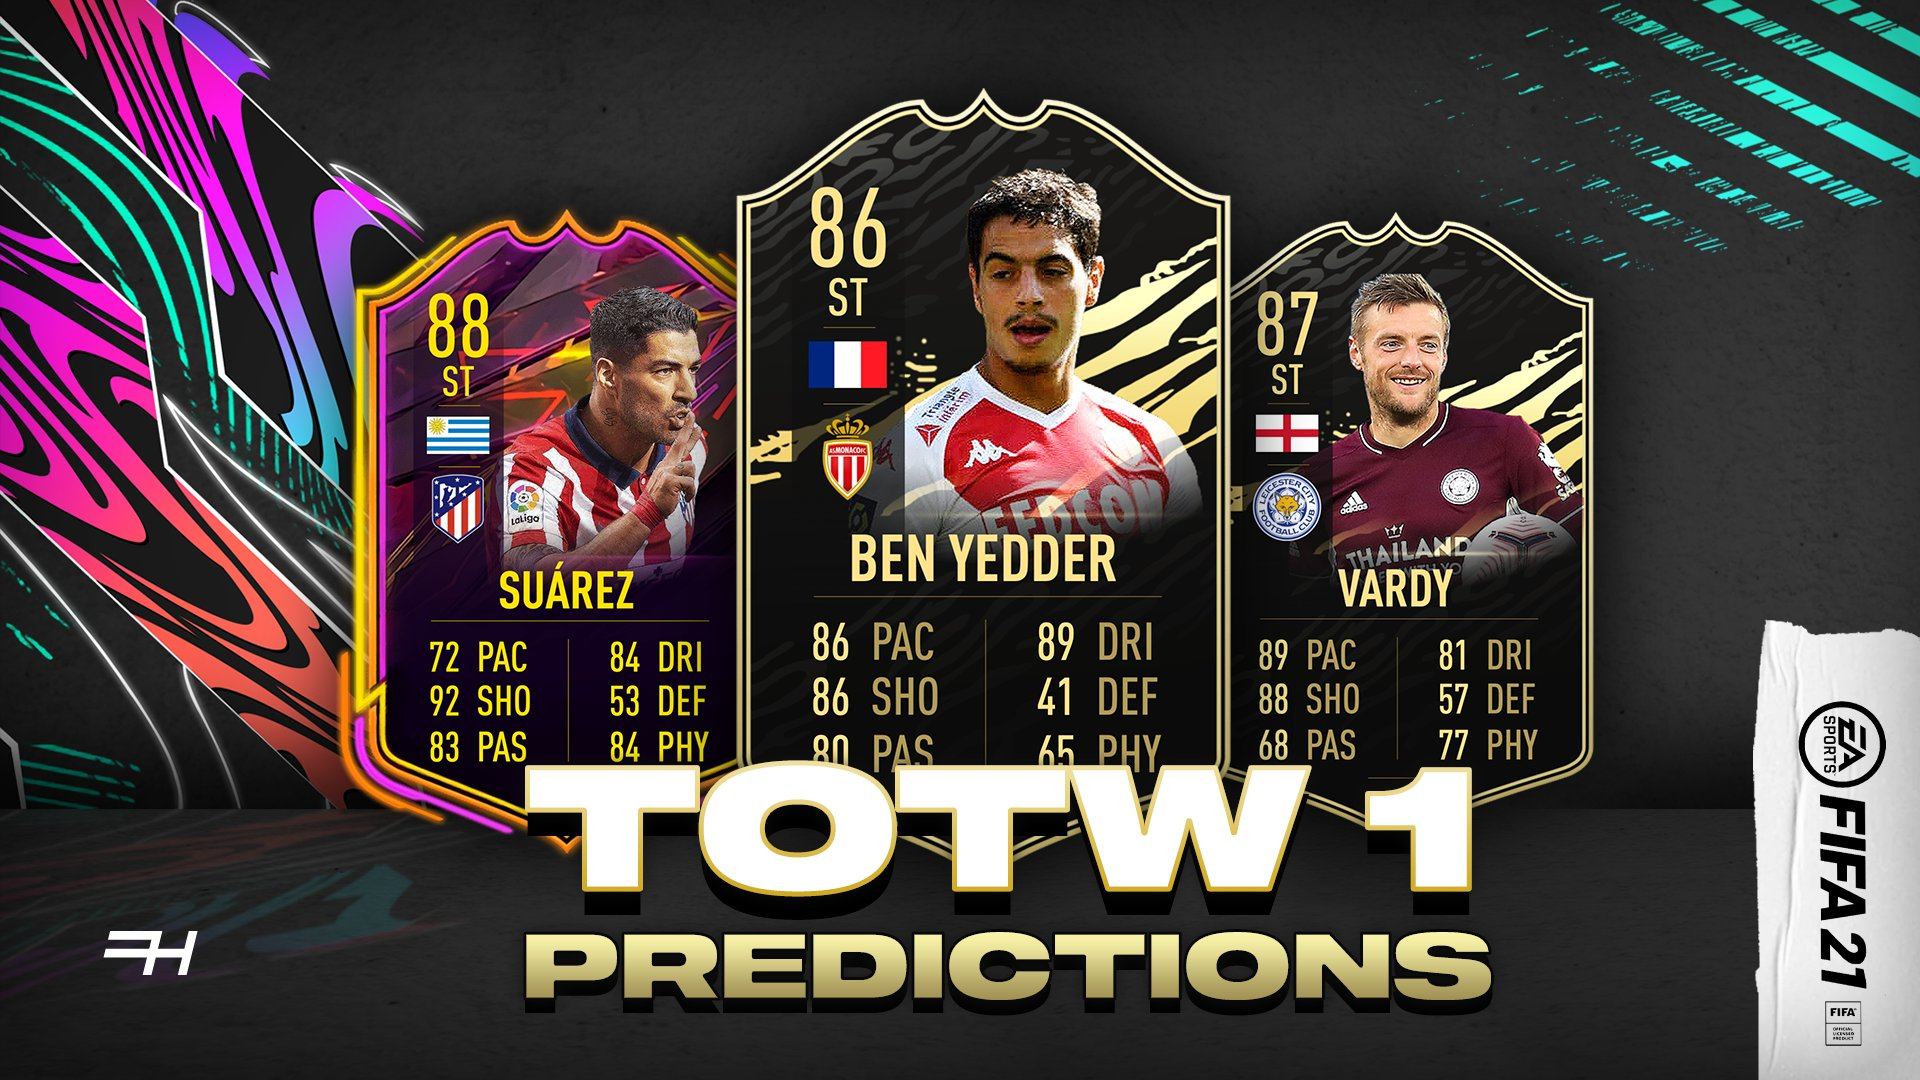 team of the week 1 predictions fifa 21 futhead news week 1 predictions fifa 21